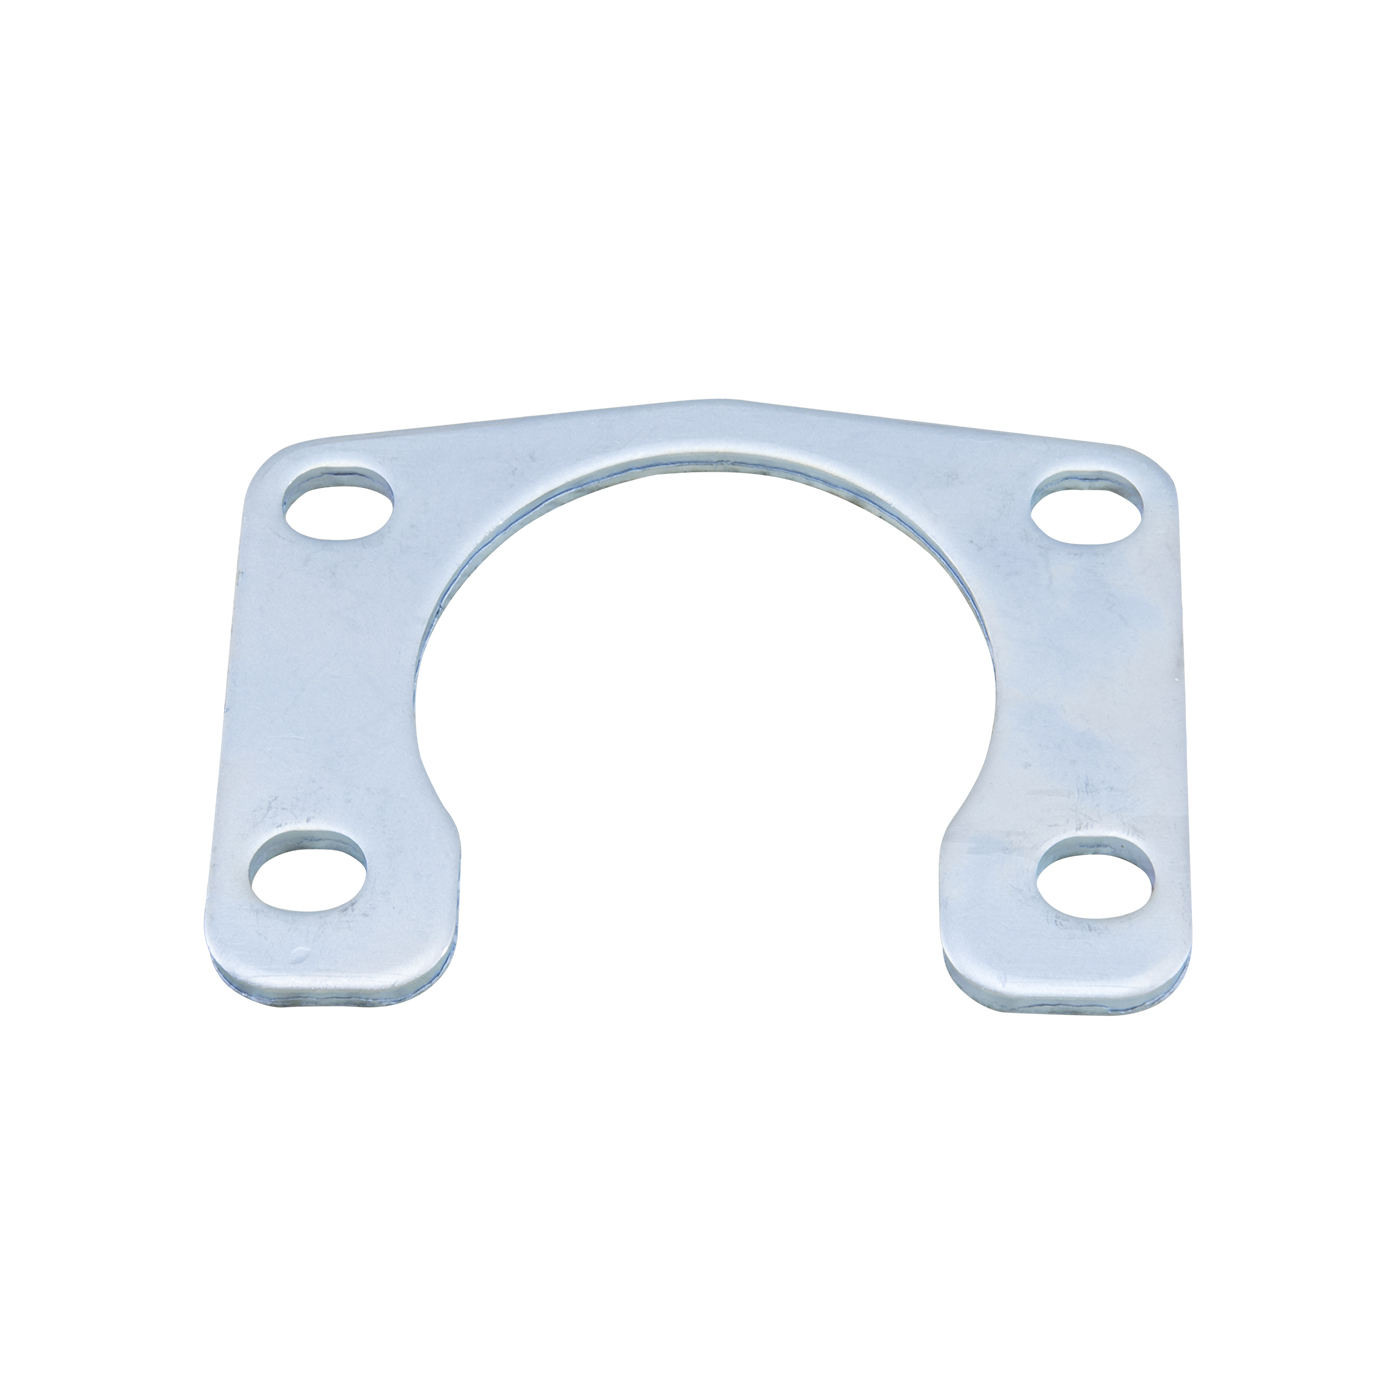 YSPRET-004 - Yukon axle bearing retainer with large & small bearing, 3/8